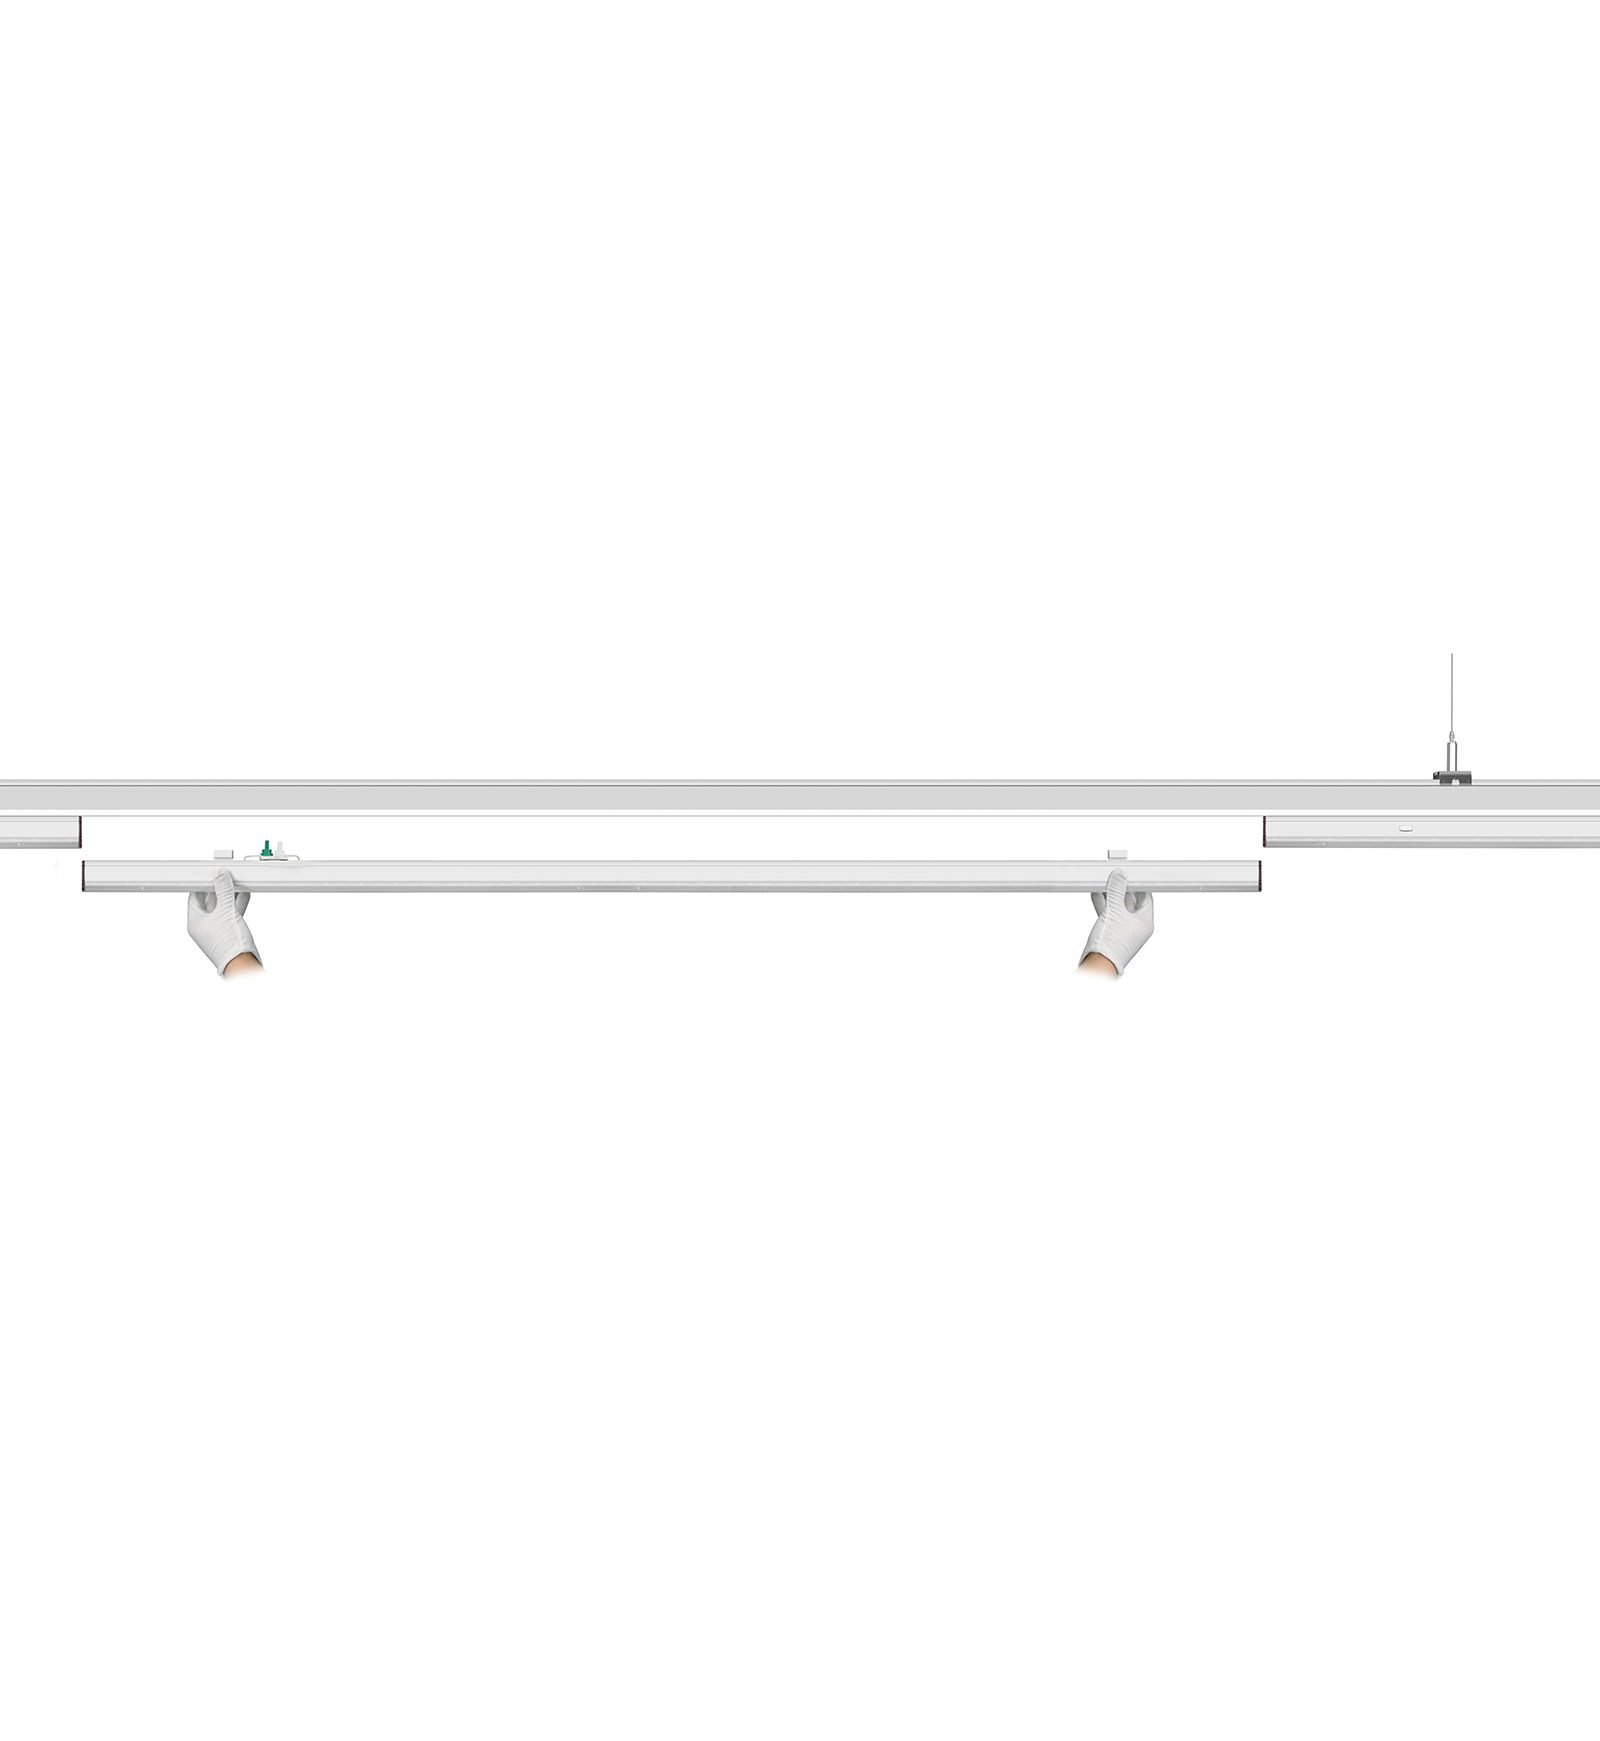 Unify Led Linear Continuous Row Lighting System Goodlight